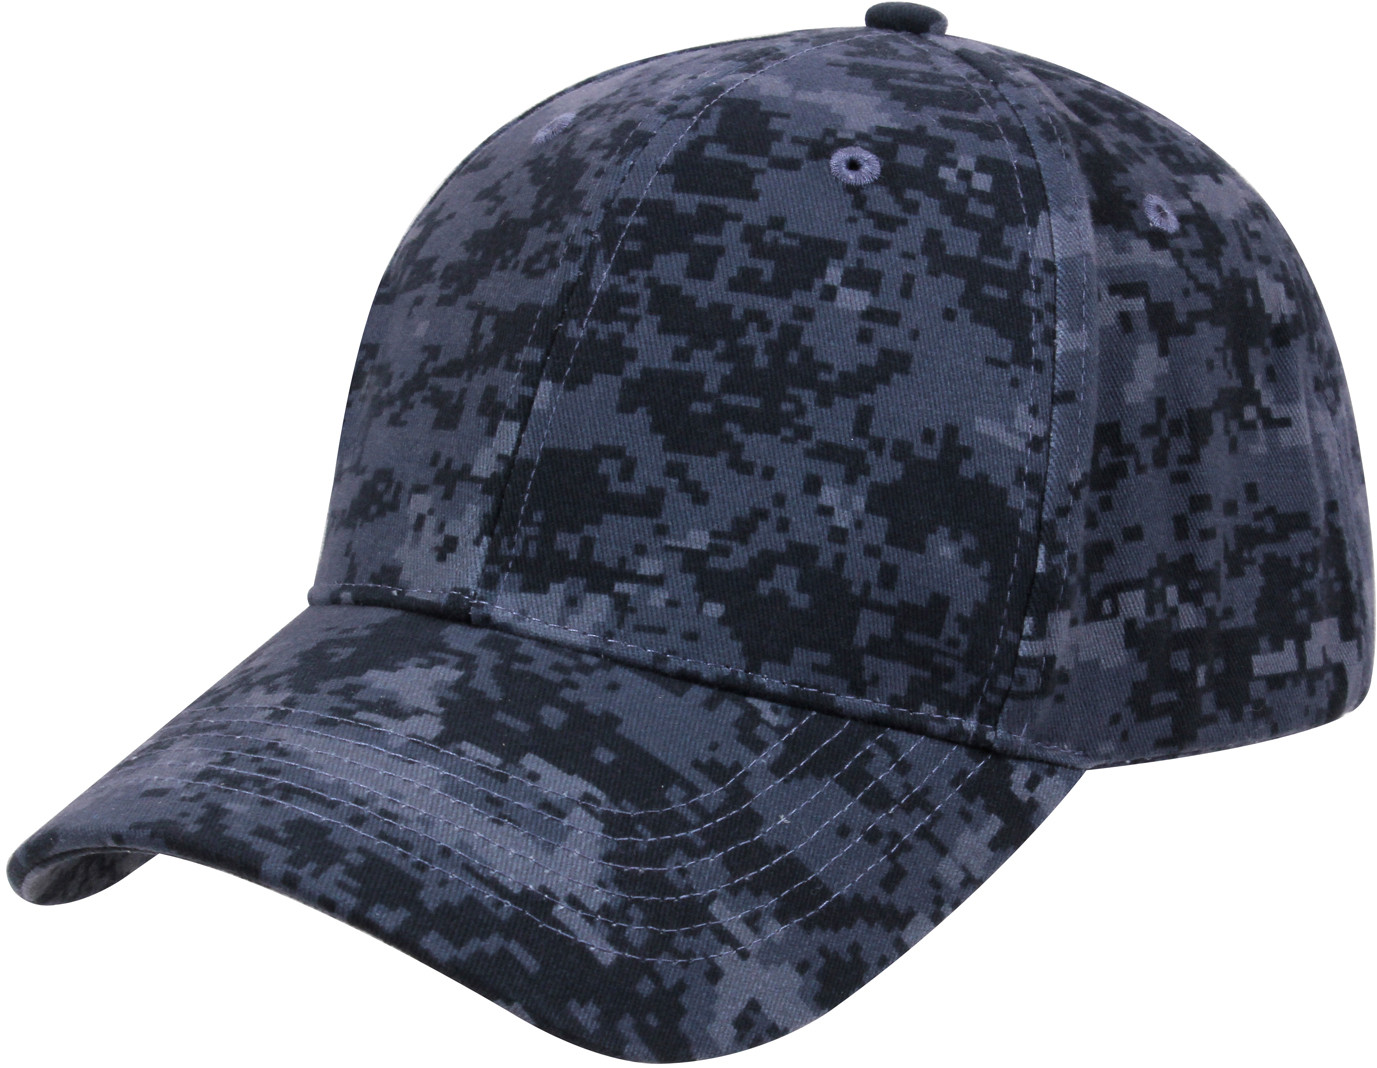 More Views. Midnight Digital Camouflage Supreme Military Low Profile  Baseball Cap 872767cfe67